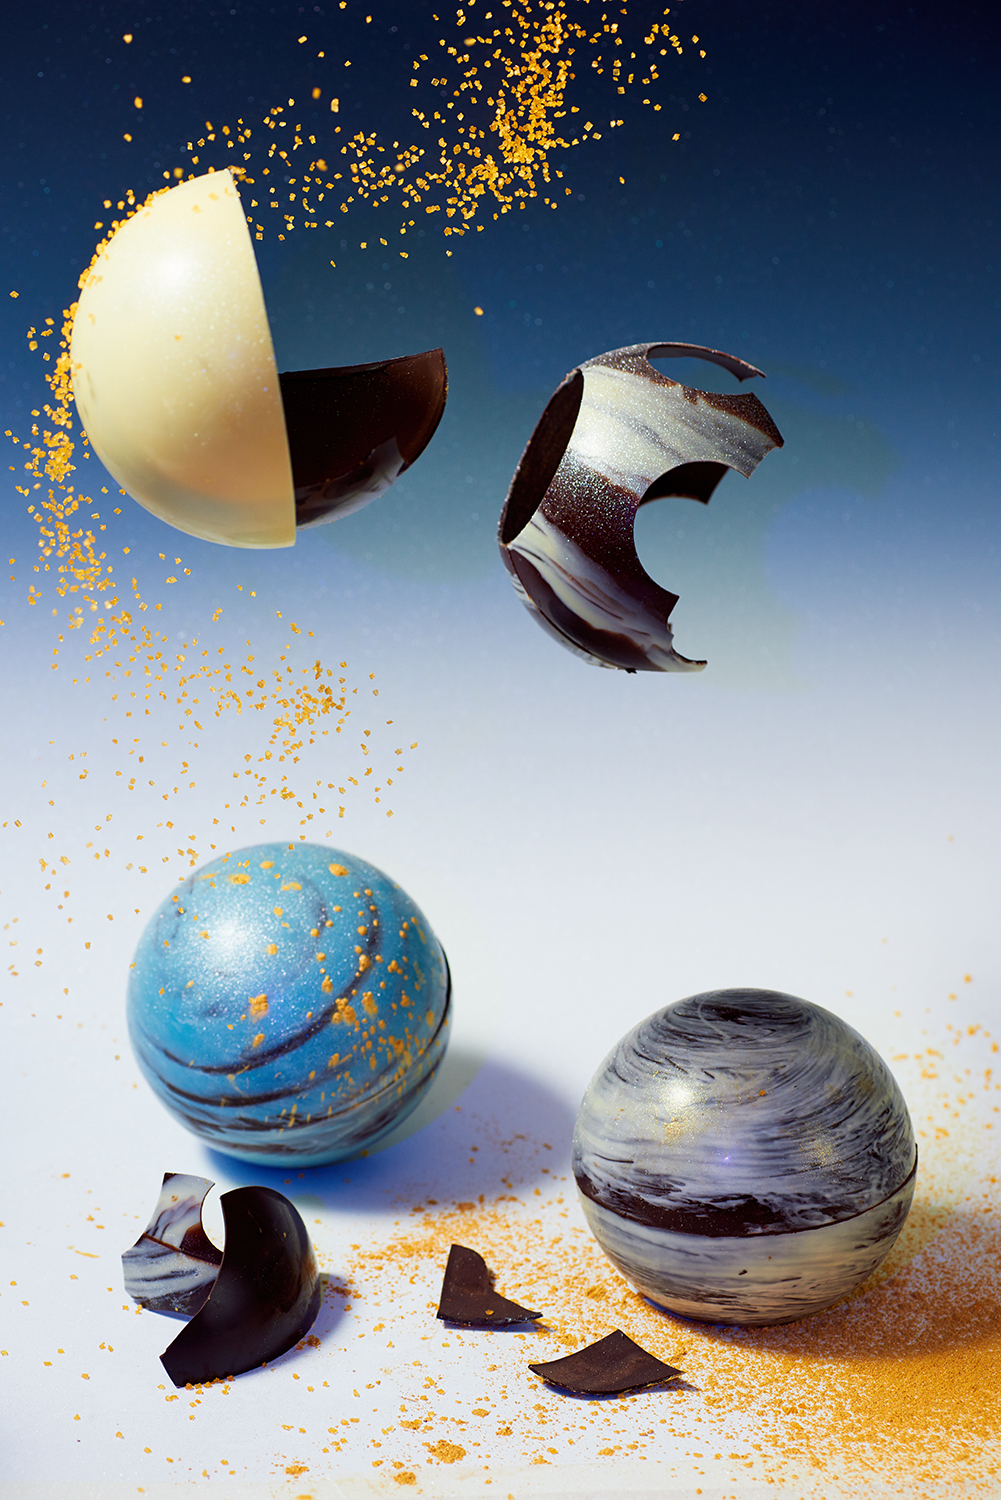 Private commission - chocolate planets